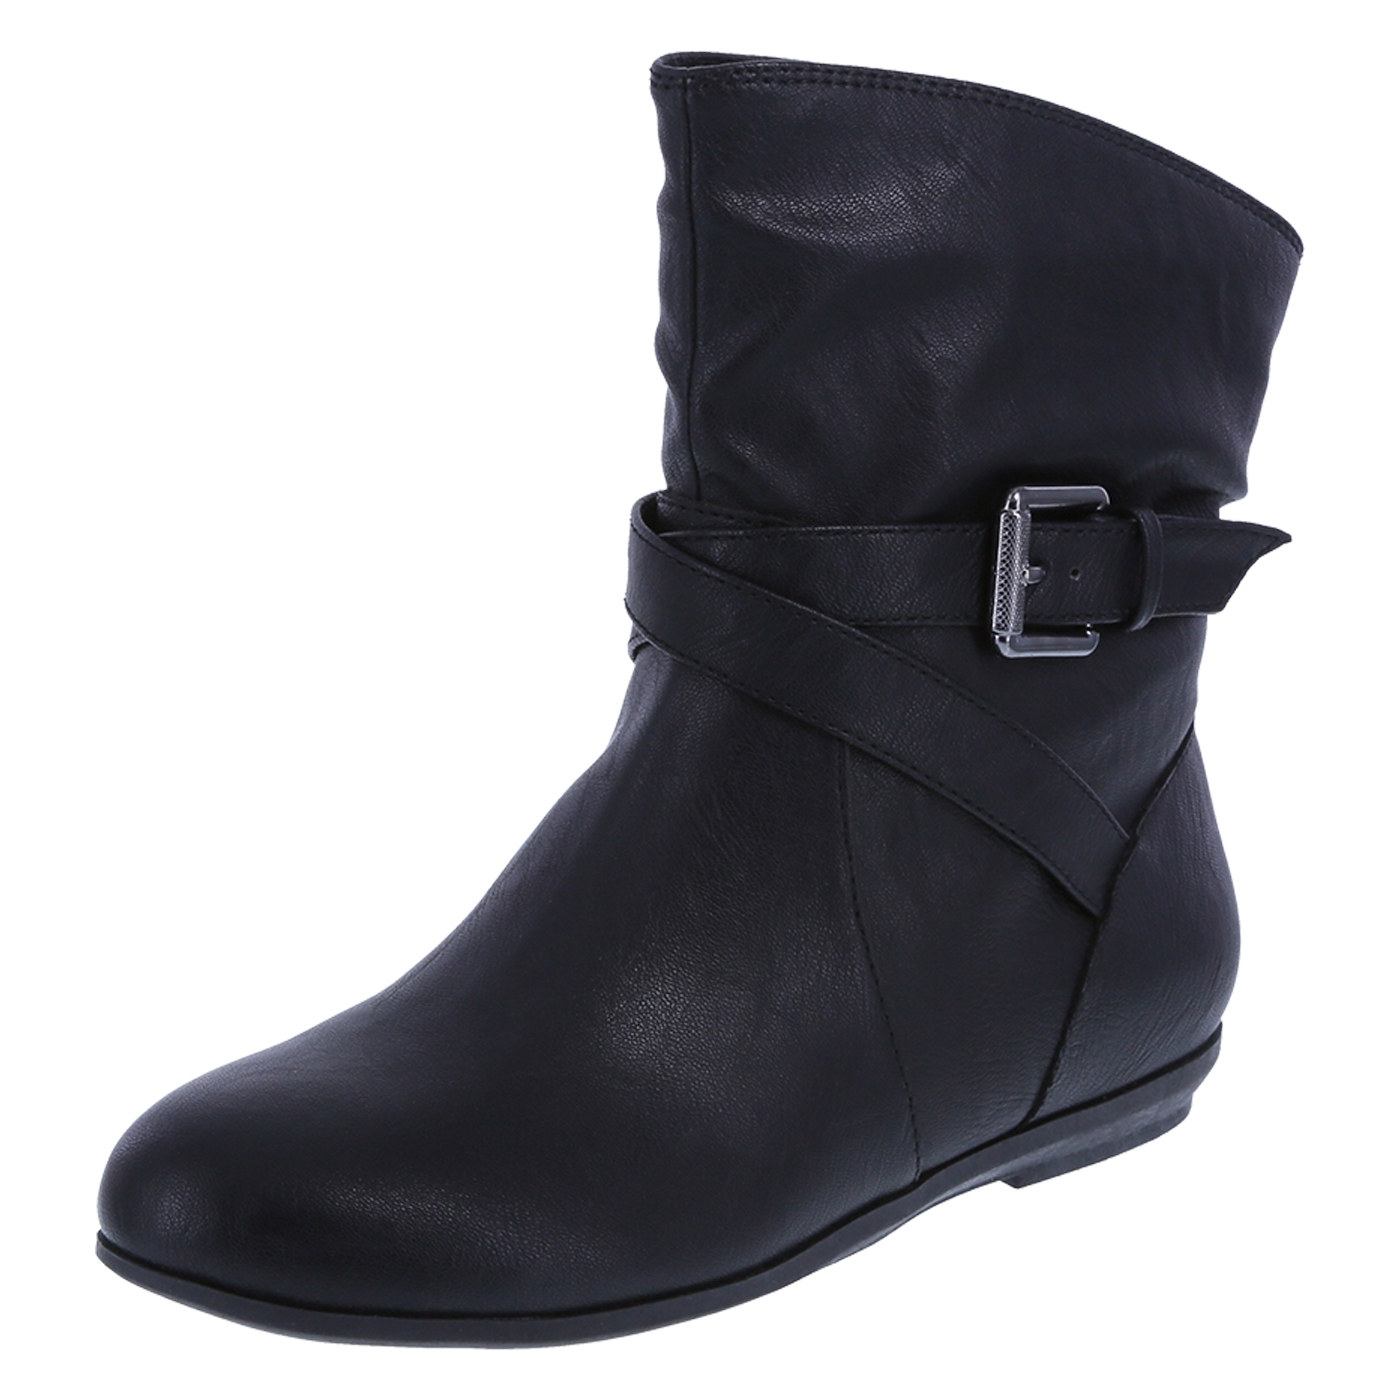 ankle boots for women womenu0027s meadows ankle boot, black, hi-res HYSGTCF